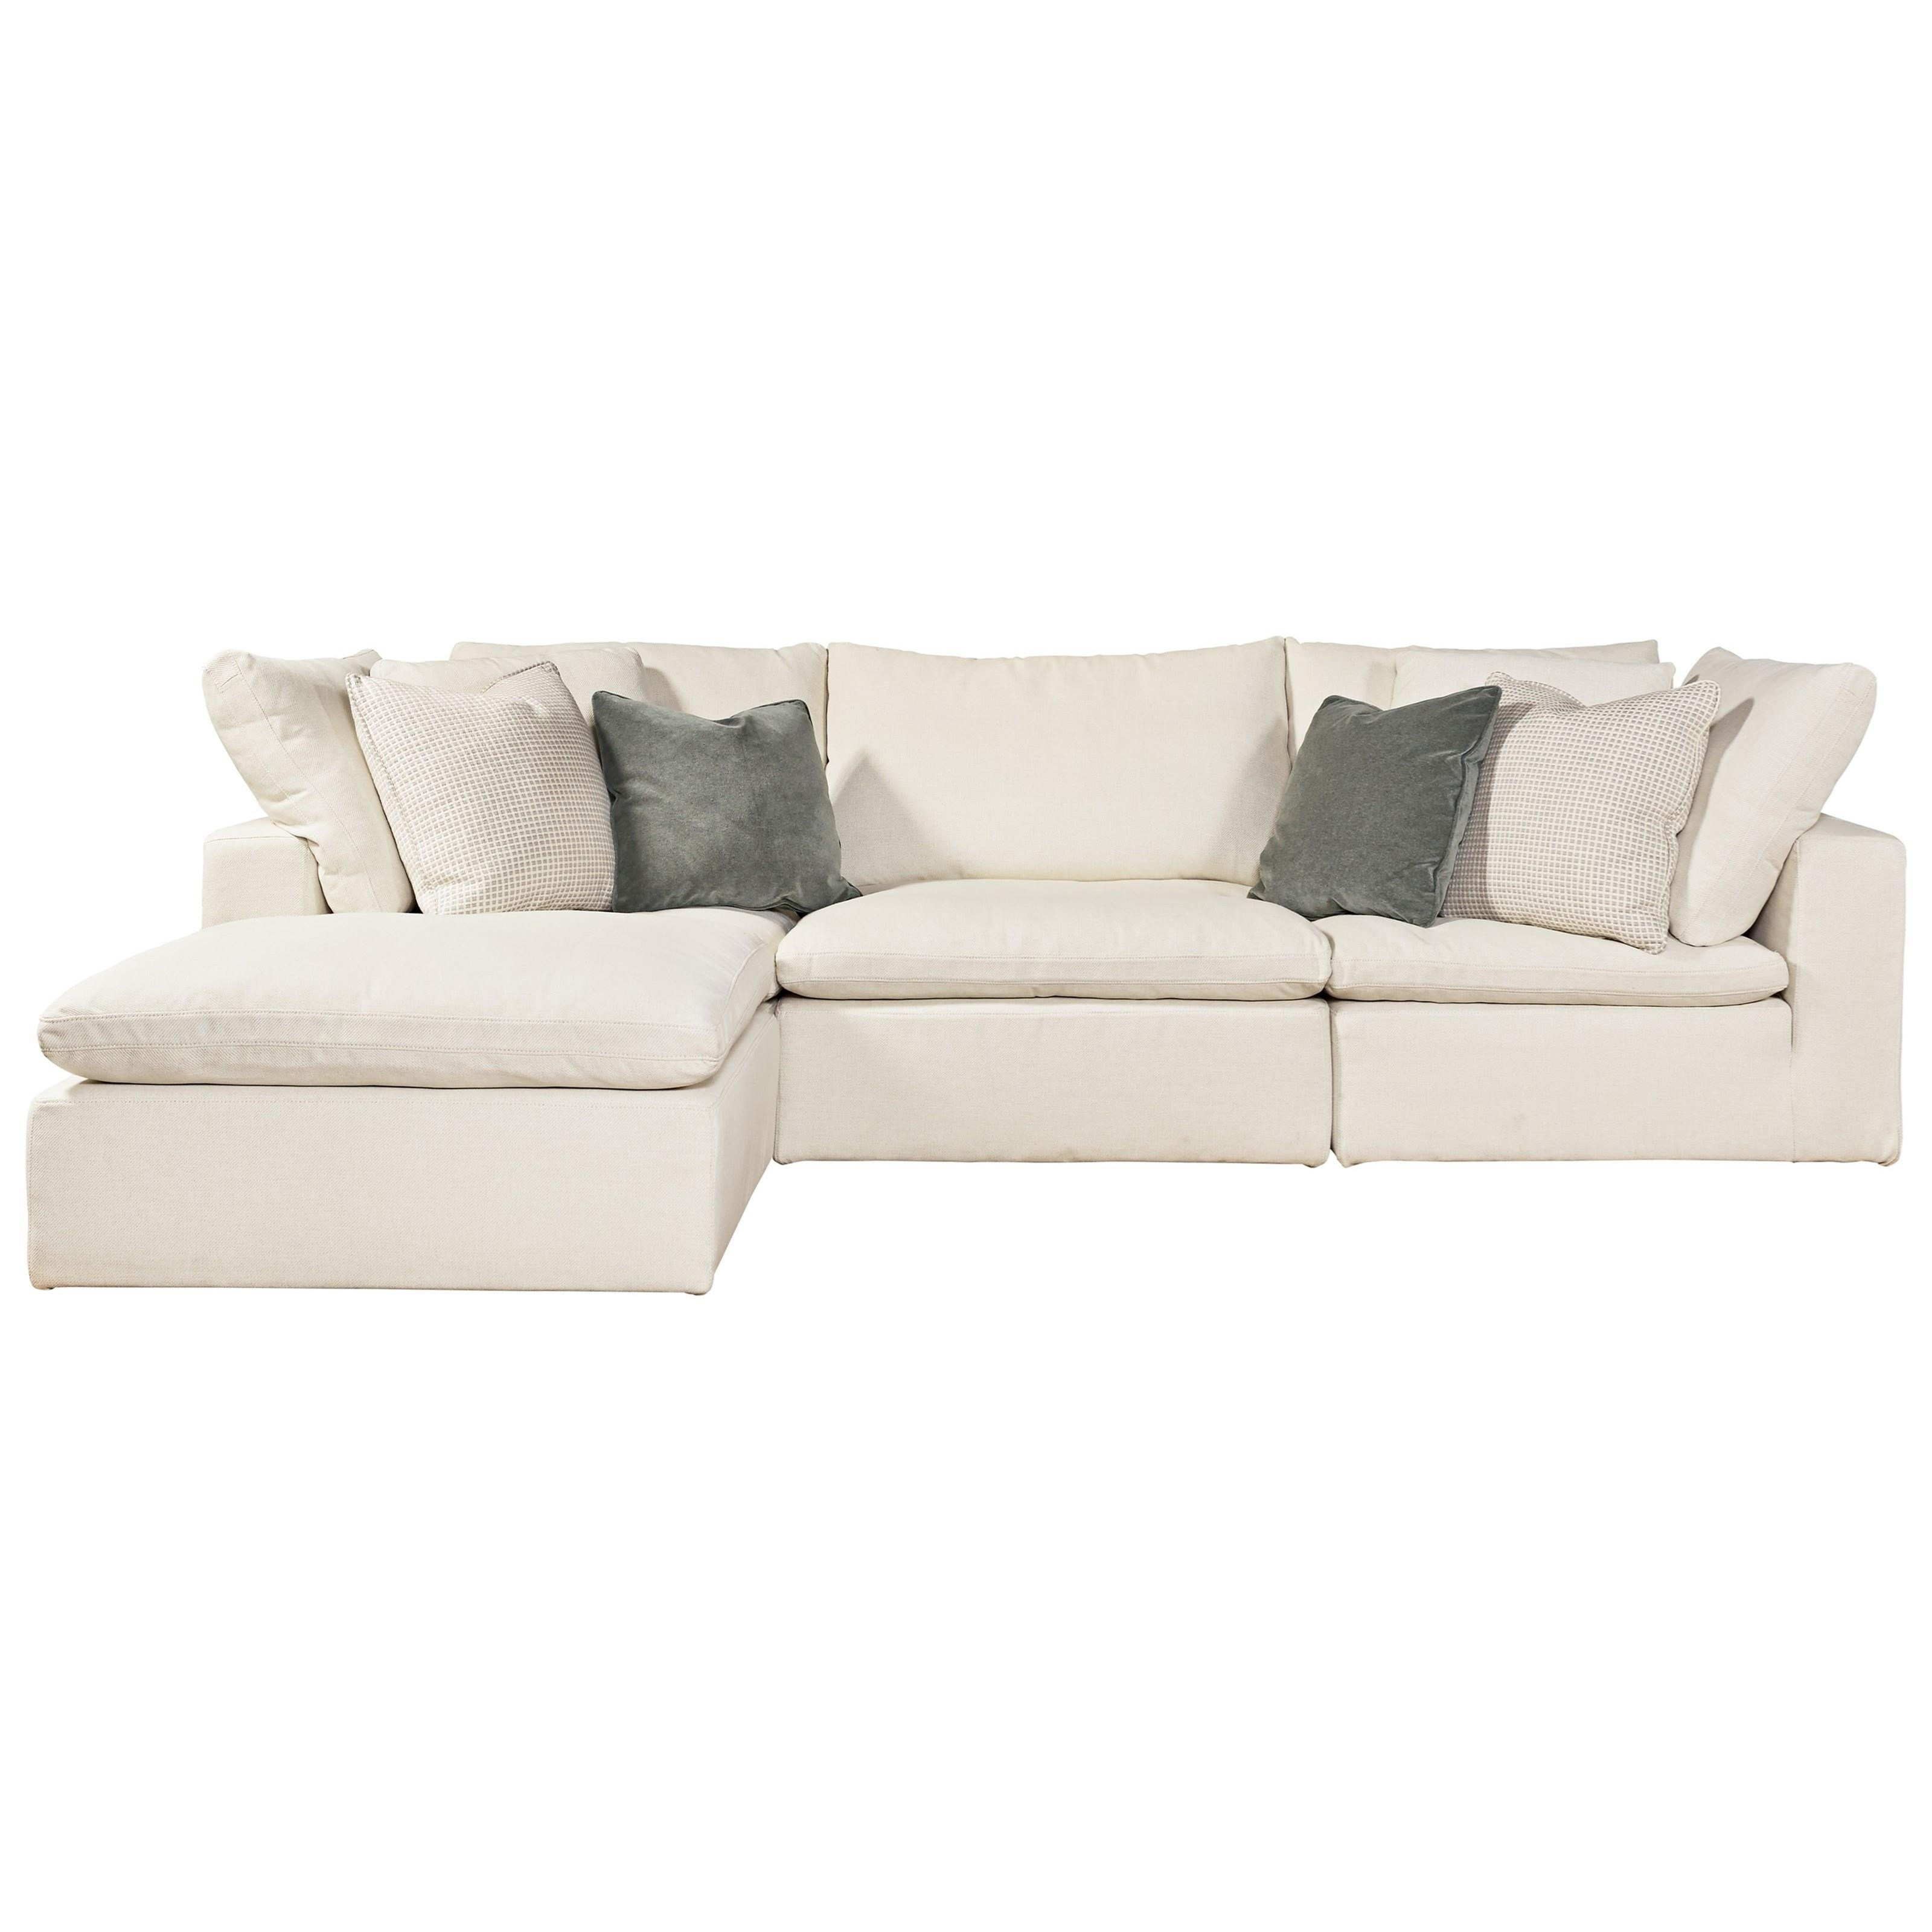 Palmer 4-Piece Sectional with Memory Foam Frame